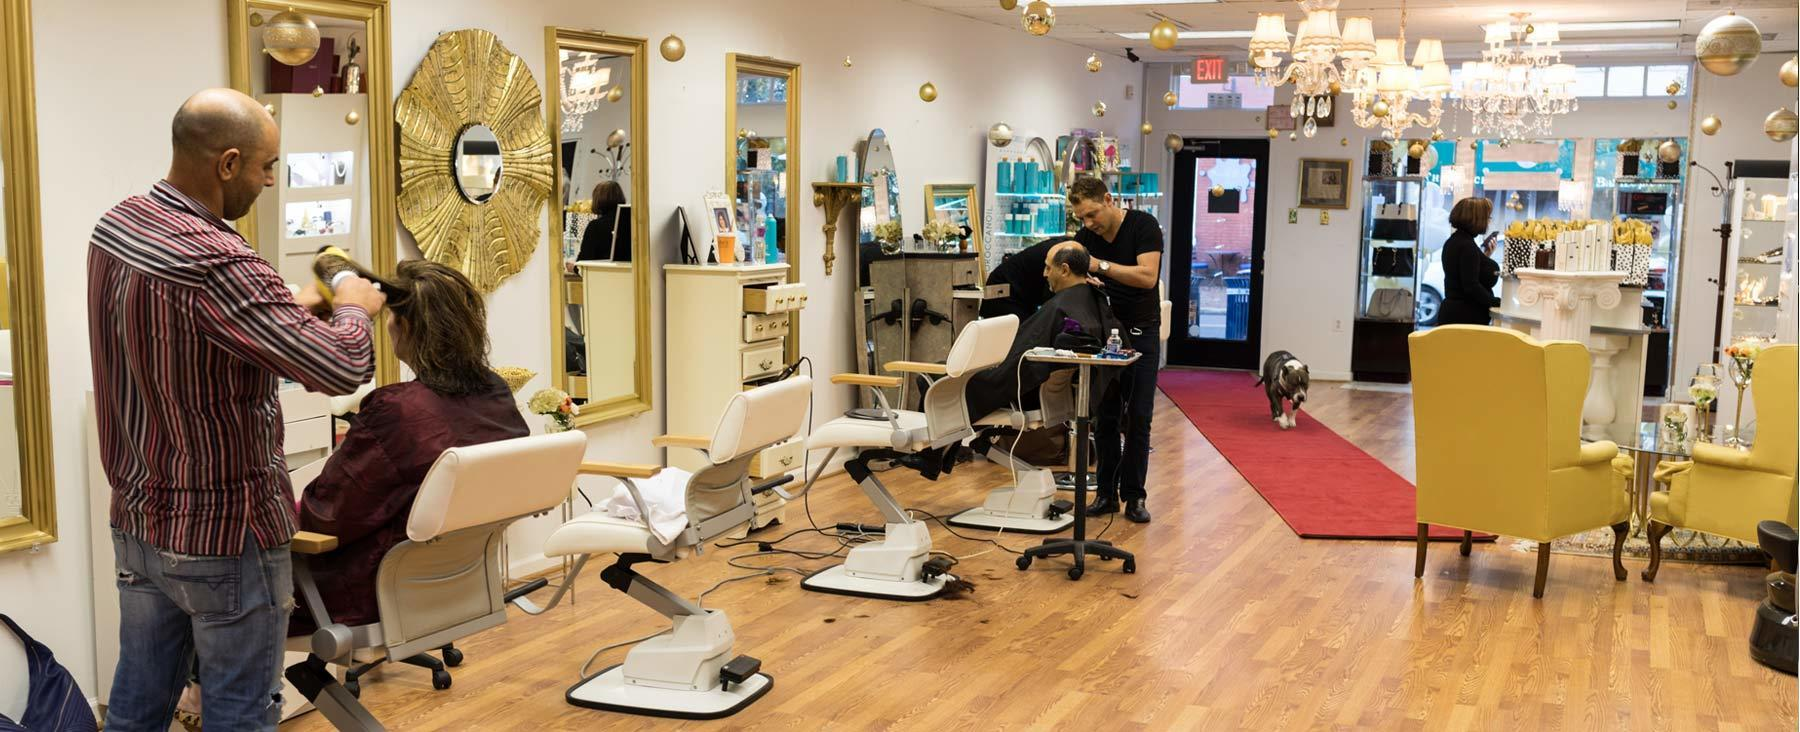 Salon amarti spa in alexandria va whitepages for 24 hour nail salon los angeles